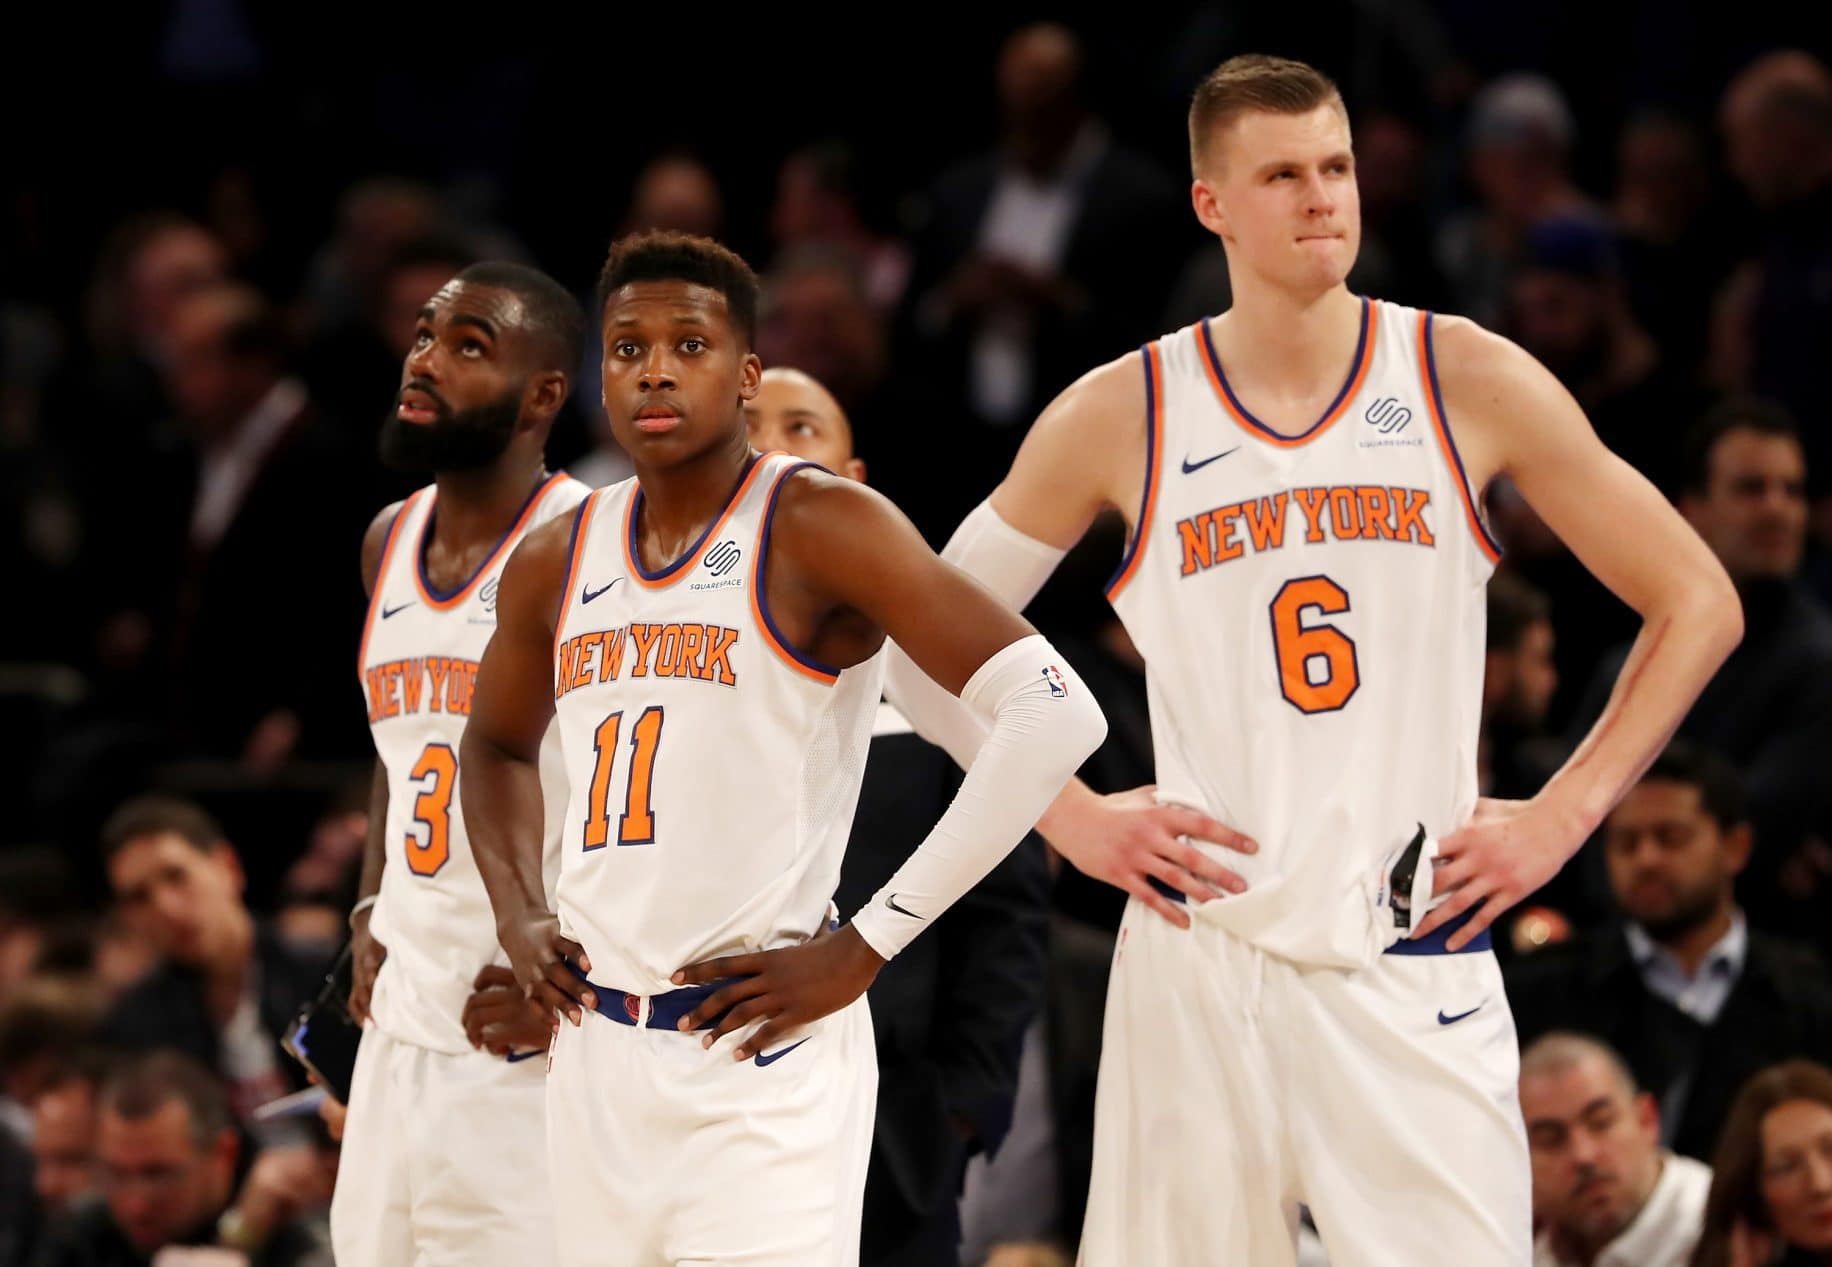 Frank Ntilikina is making the right strides with the New York Knicks